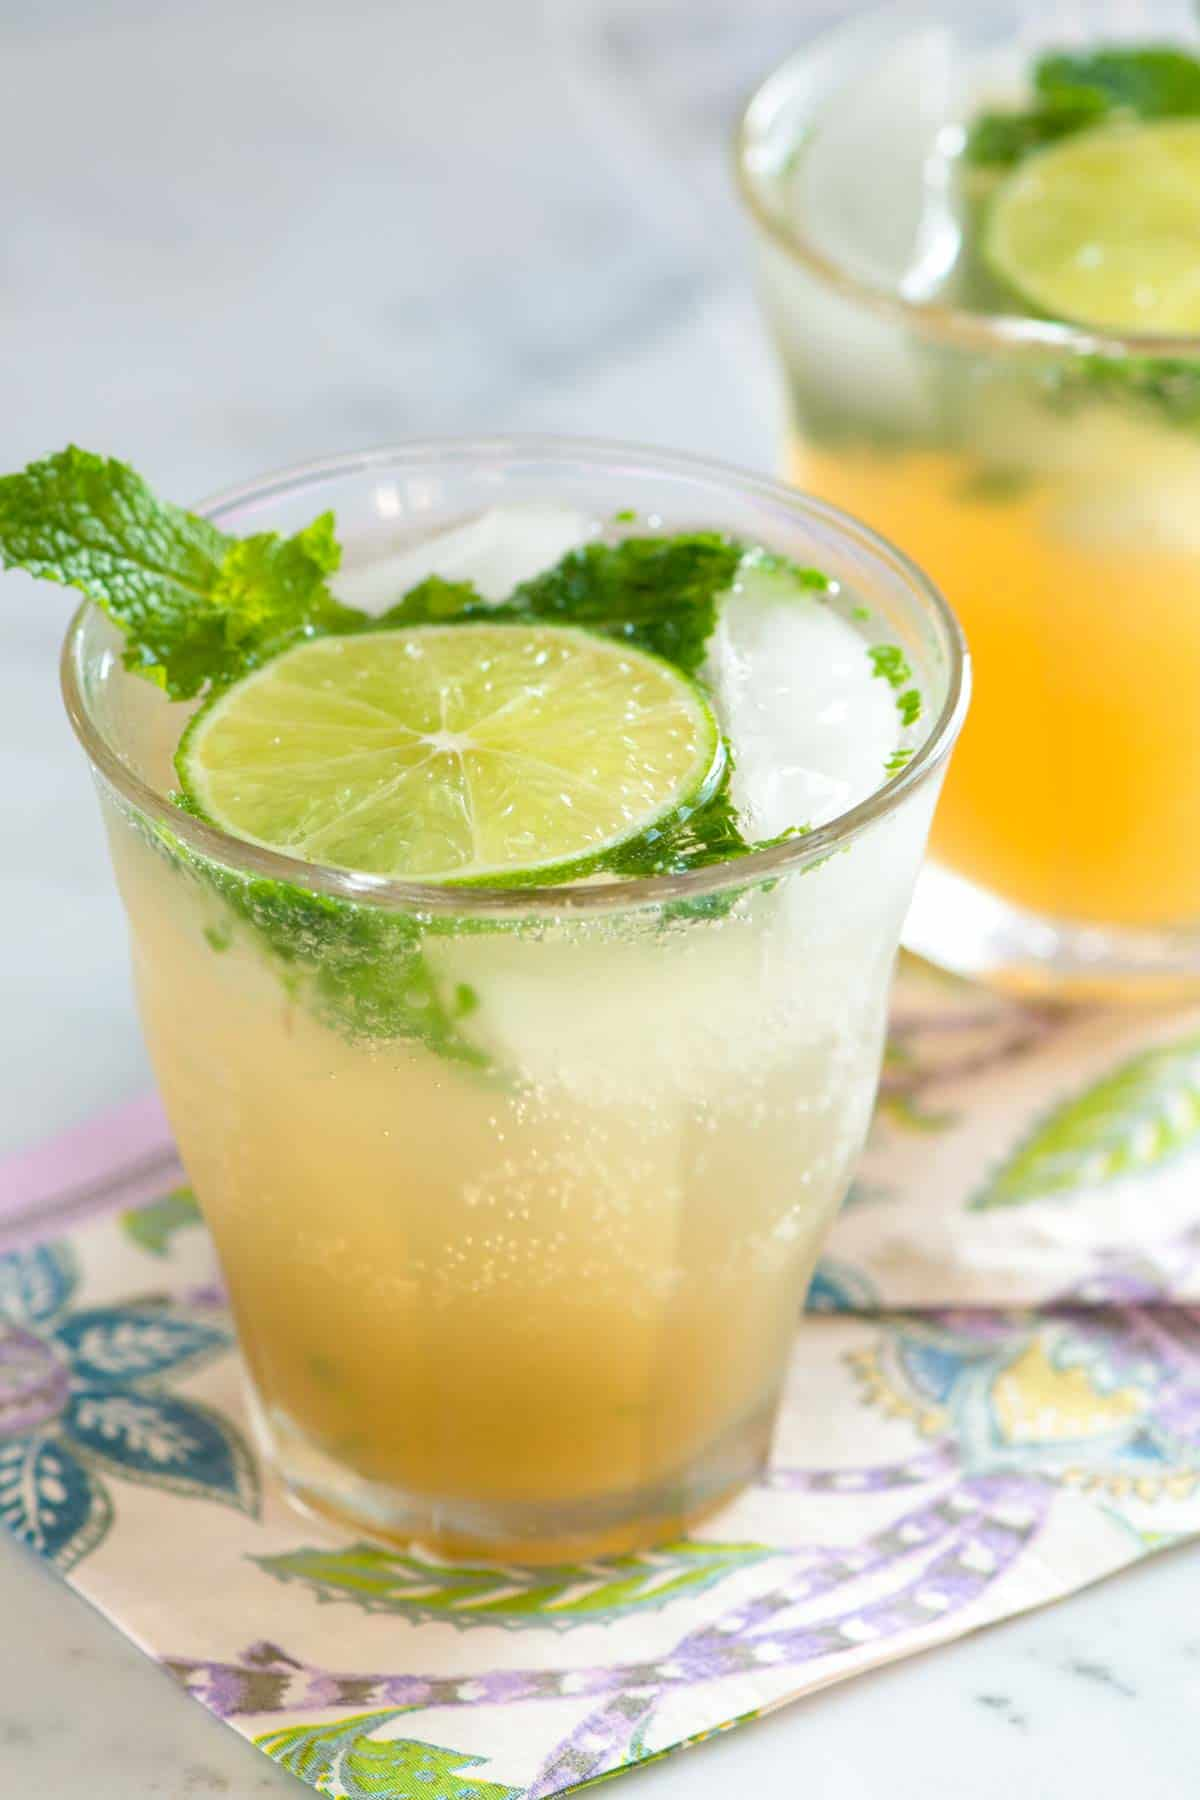 Our favorite mojito recipe with white rum, fresh lime, and mint. I'll share how to make mojitos for one as well as how to make them in a pitcher, perfect for serving a crowd.